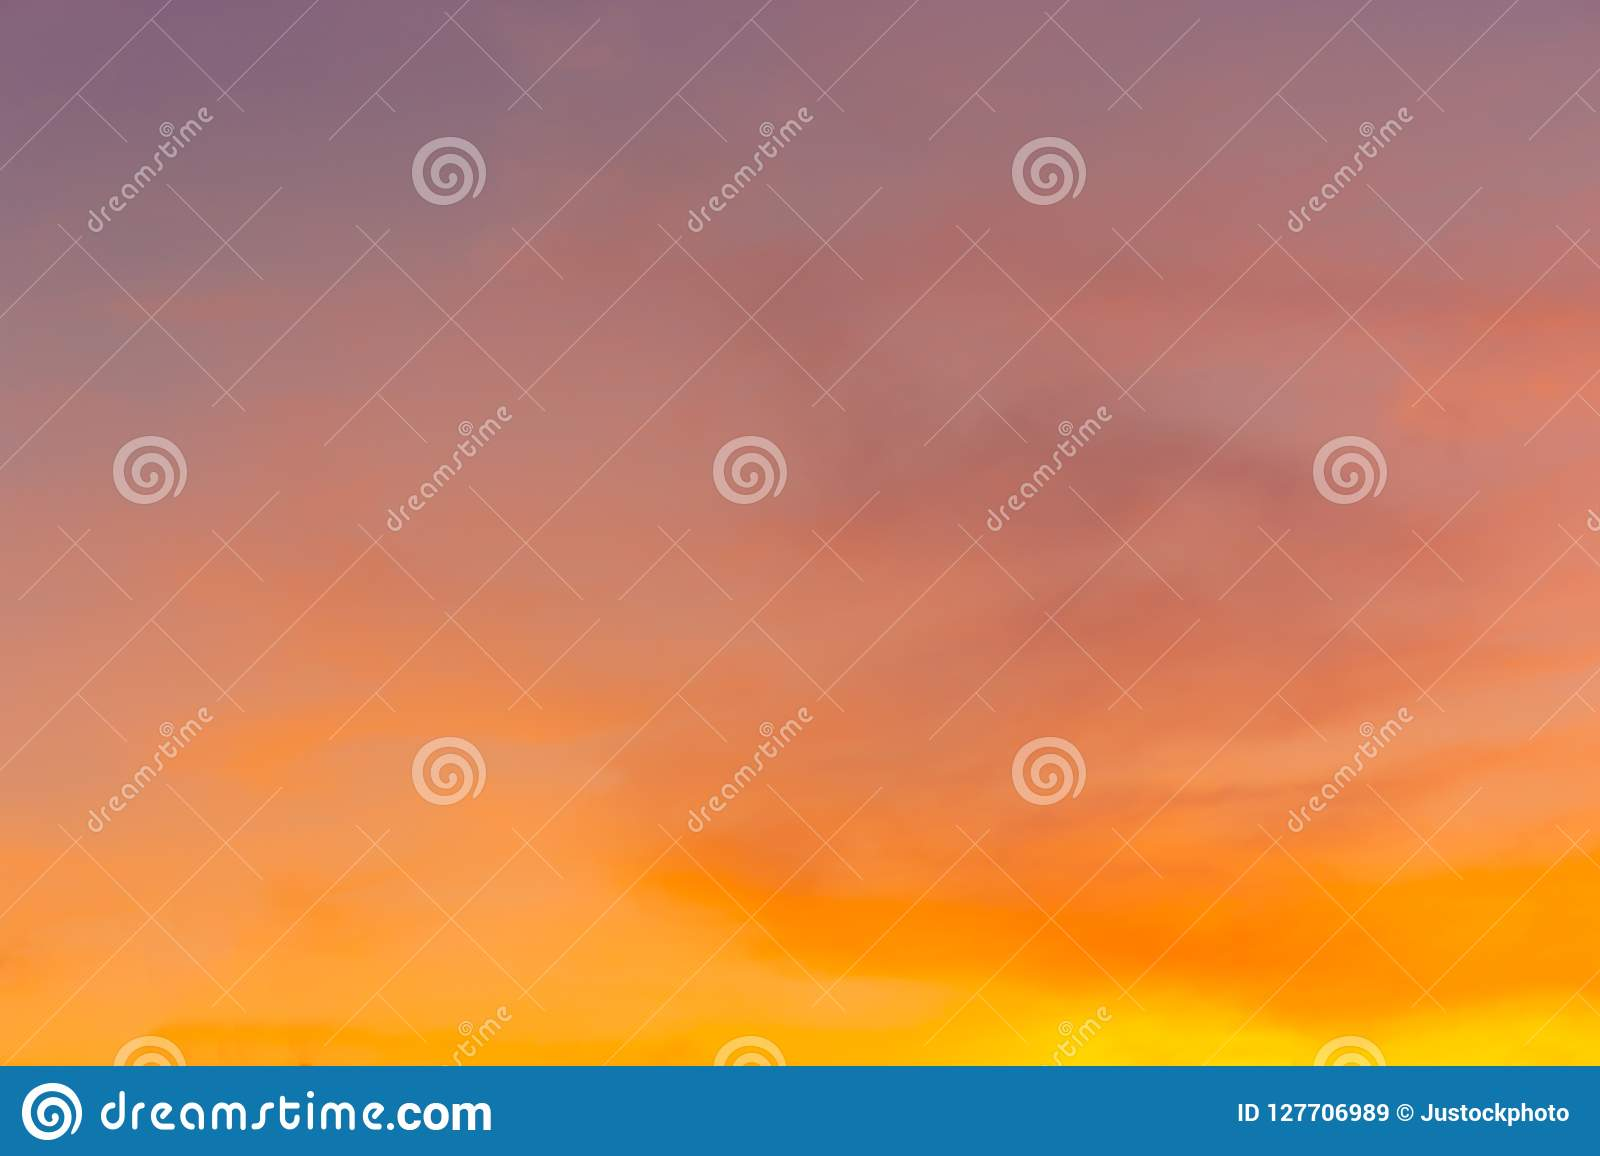 beautiful colorful sunset sky and cloud nature background for